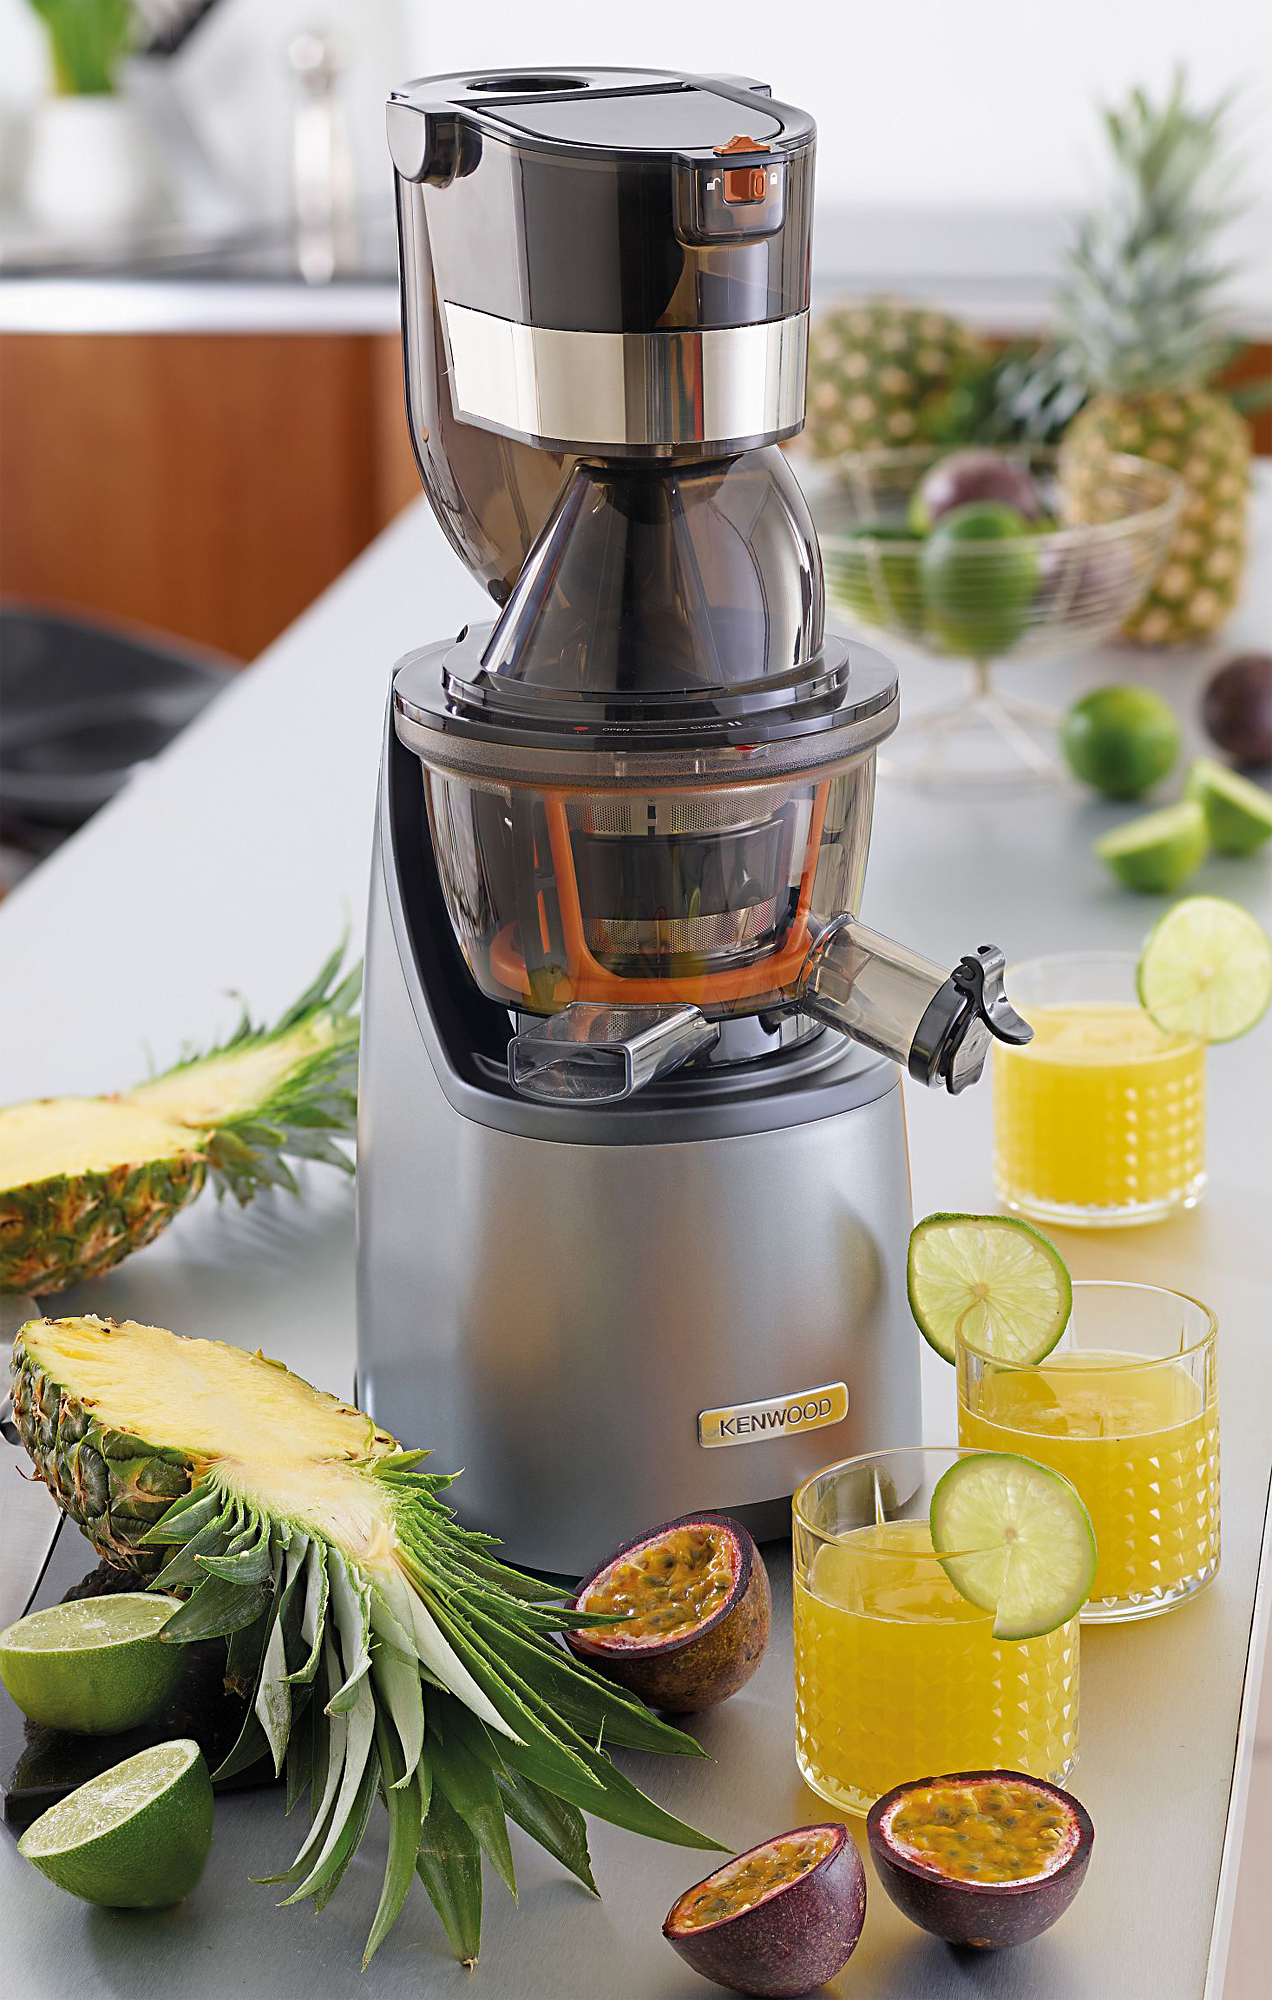 Kenwood Slow Juicer Jmp 800 : Kenwood Entsafter Slow Juicer JMP800SI